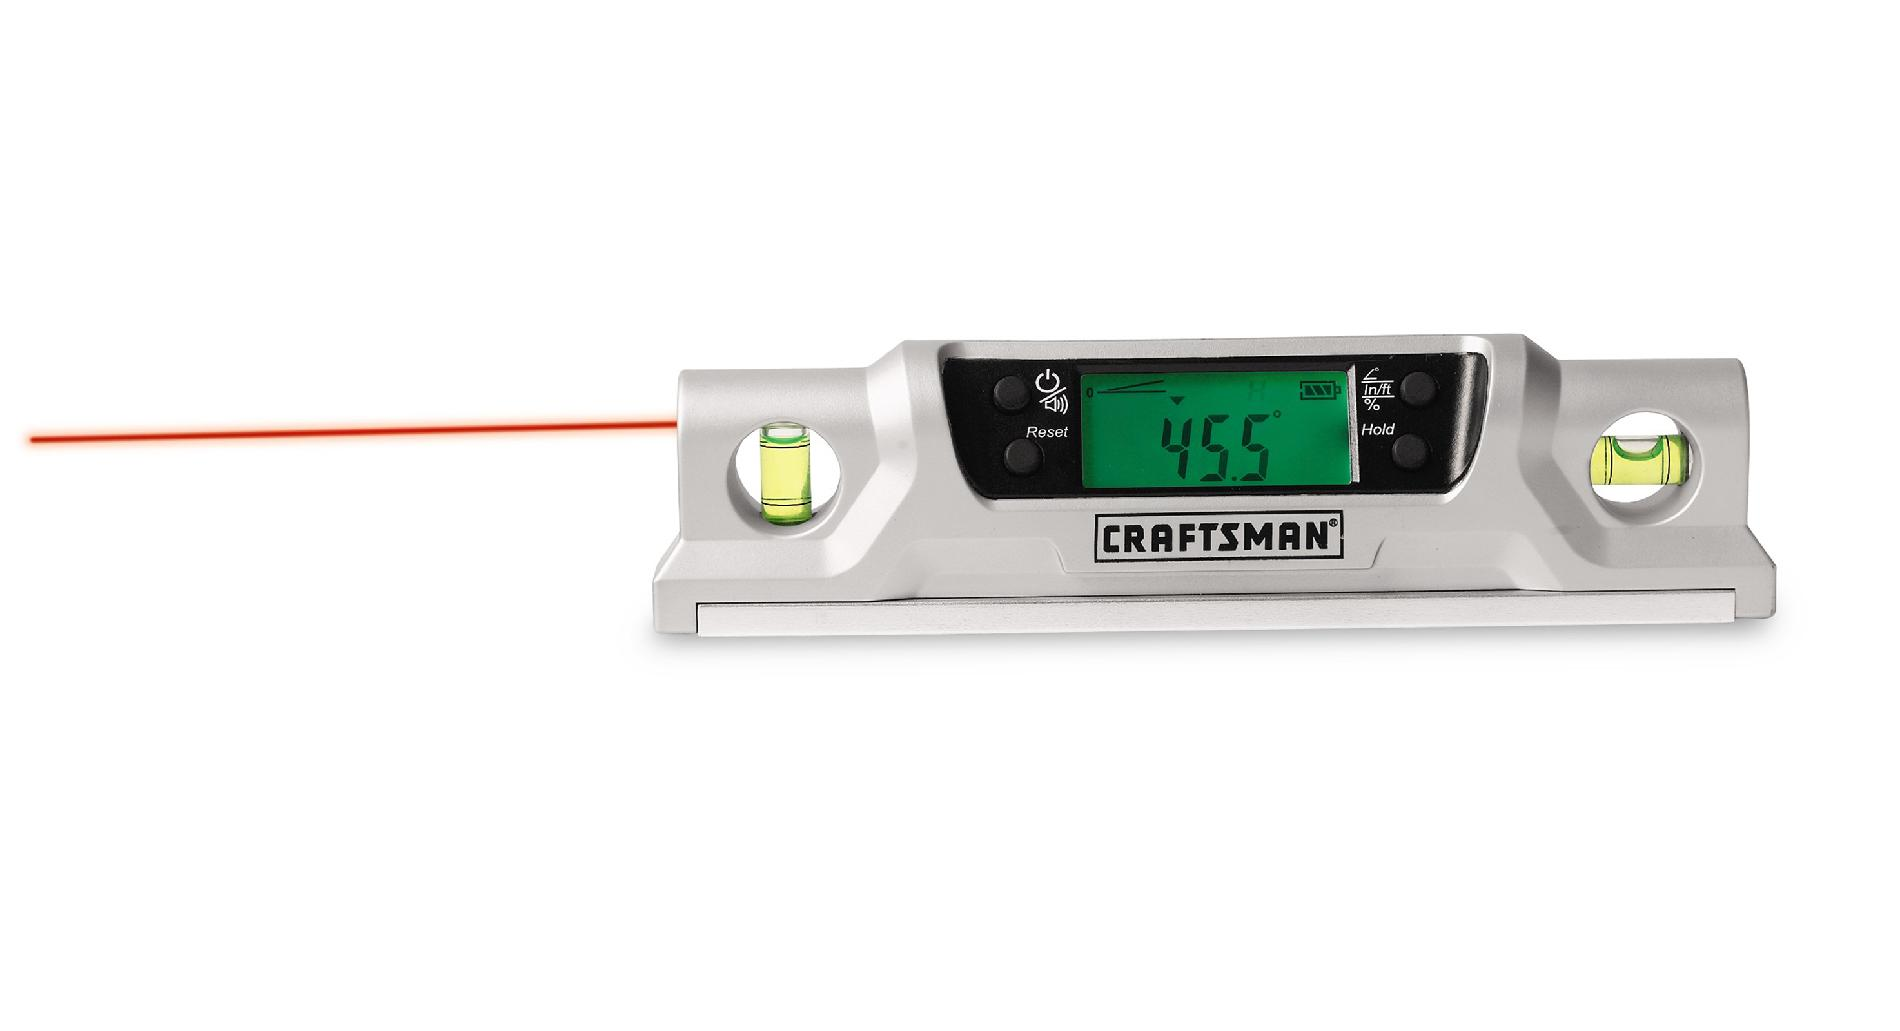 Craftsman Craftsman Digital Torpedo Level